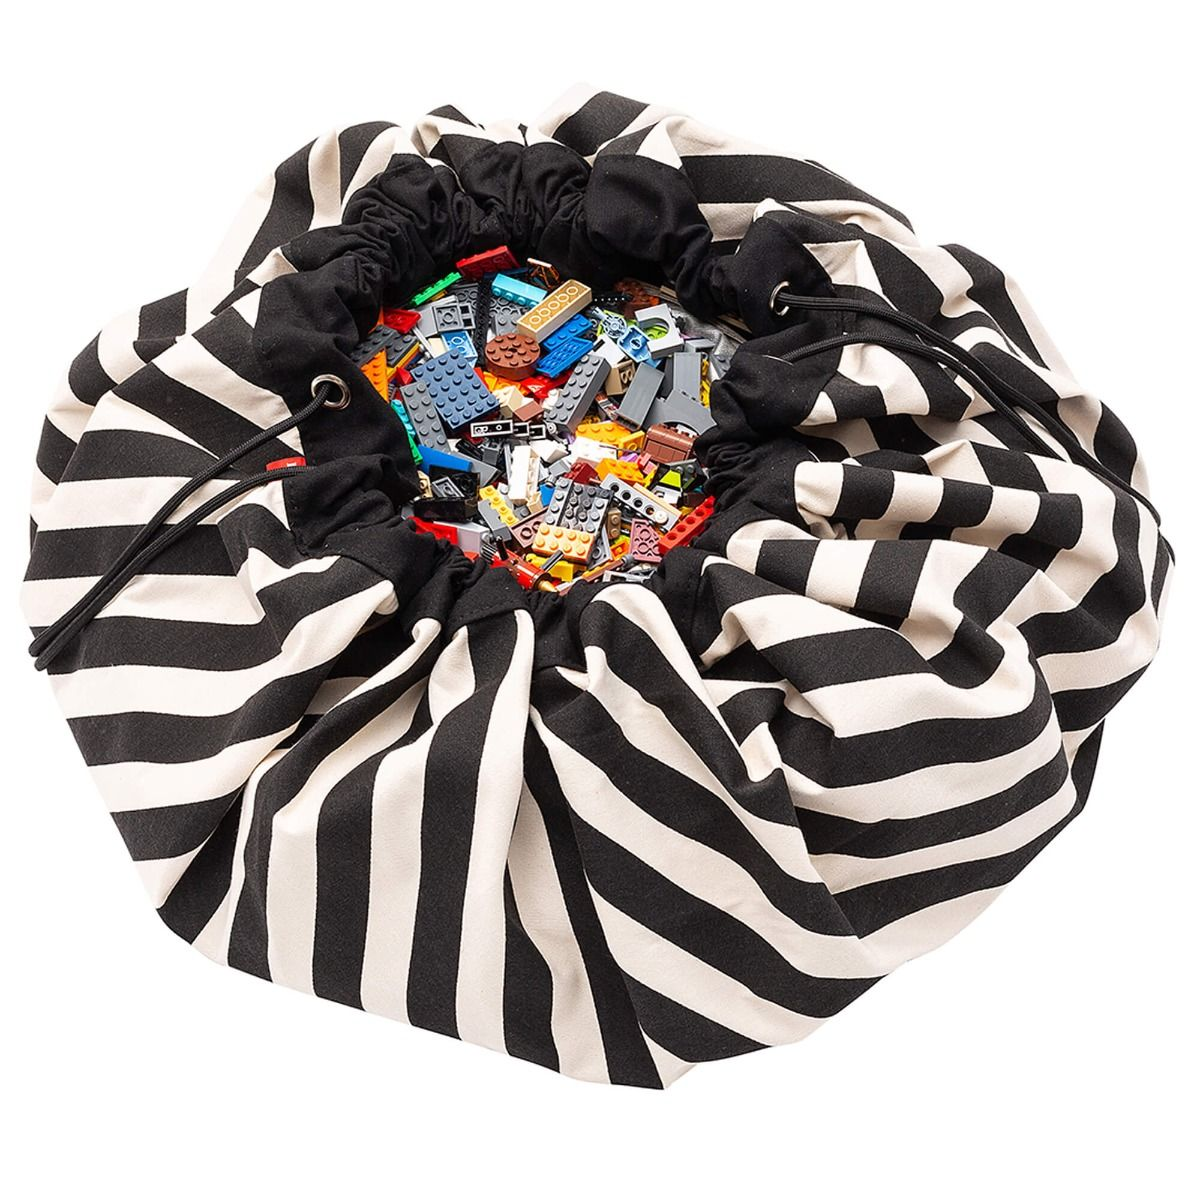 Play&Go Opbergzak/Speelkleed - 140 cm. - Stripes Black